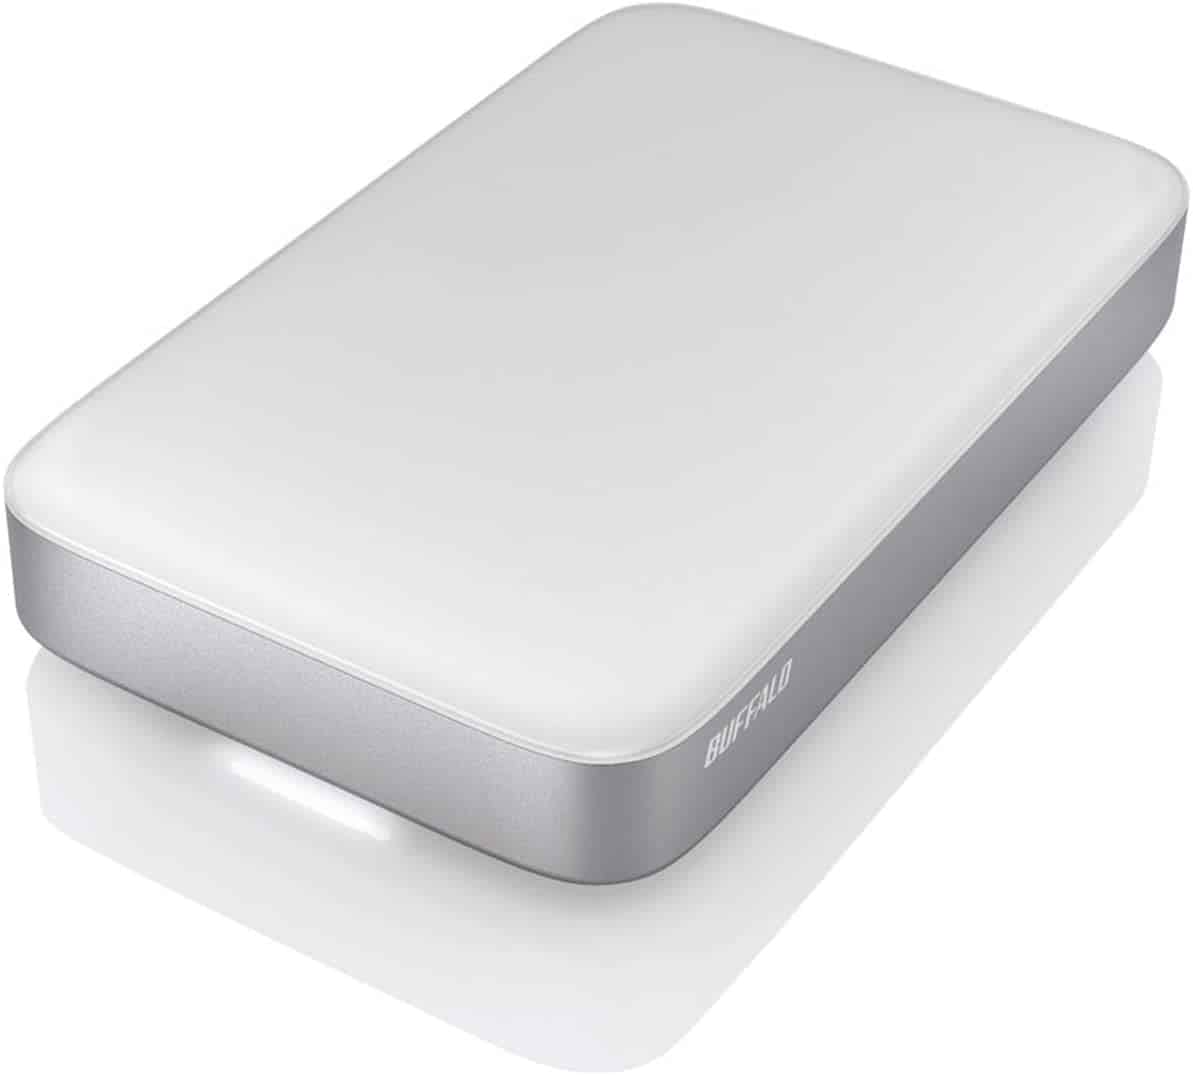 Best Portable External Drive